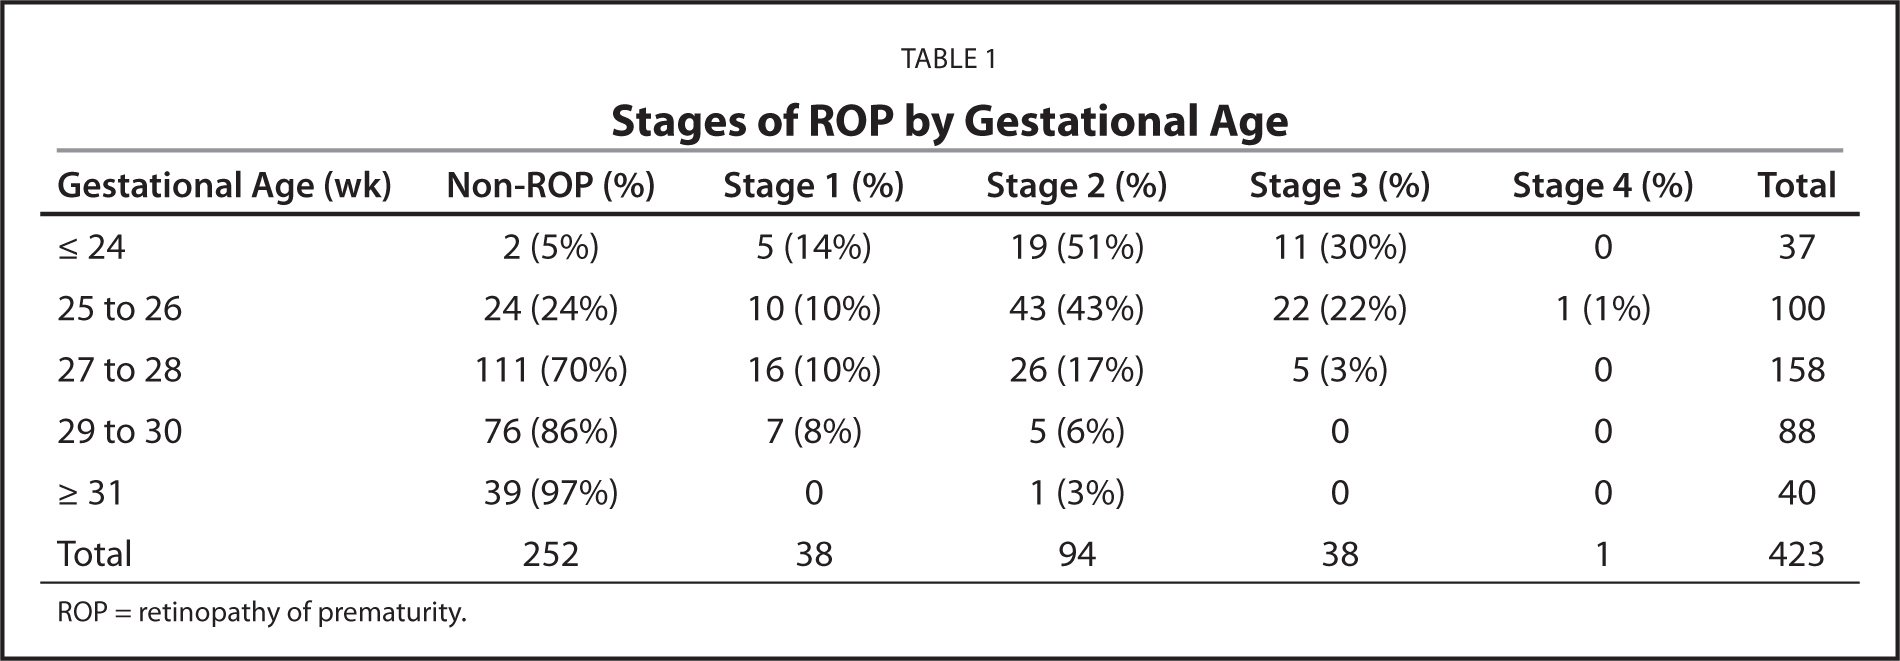 Stages of ROP by Gestational Age